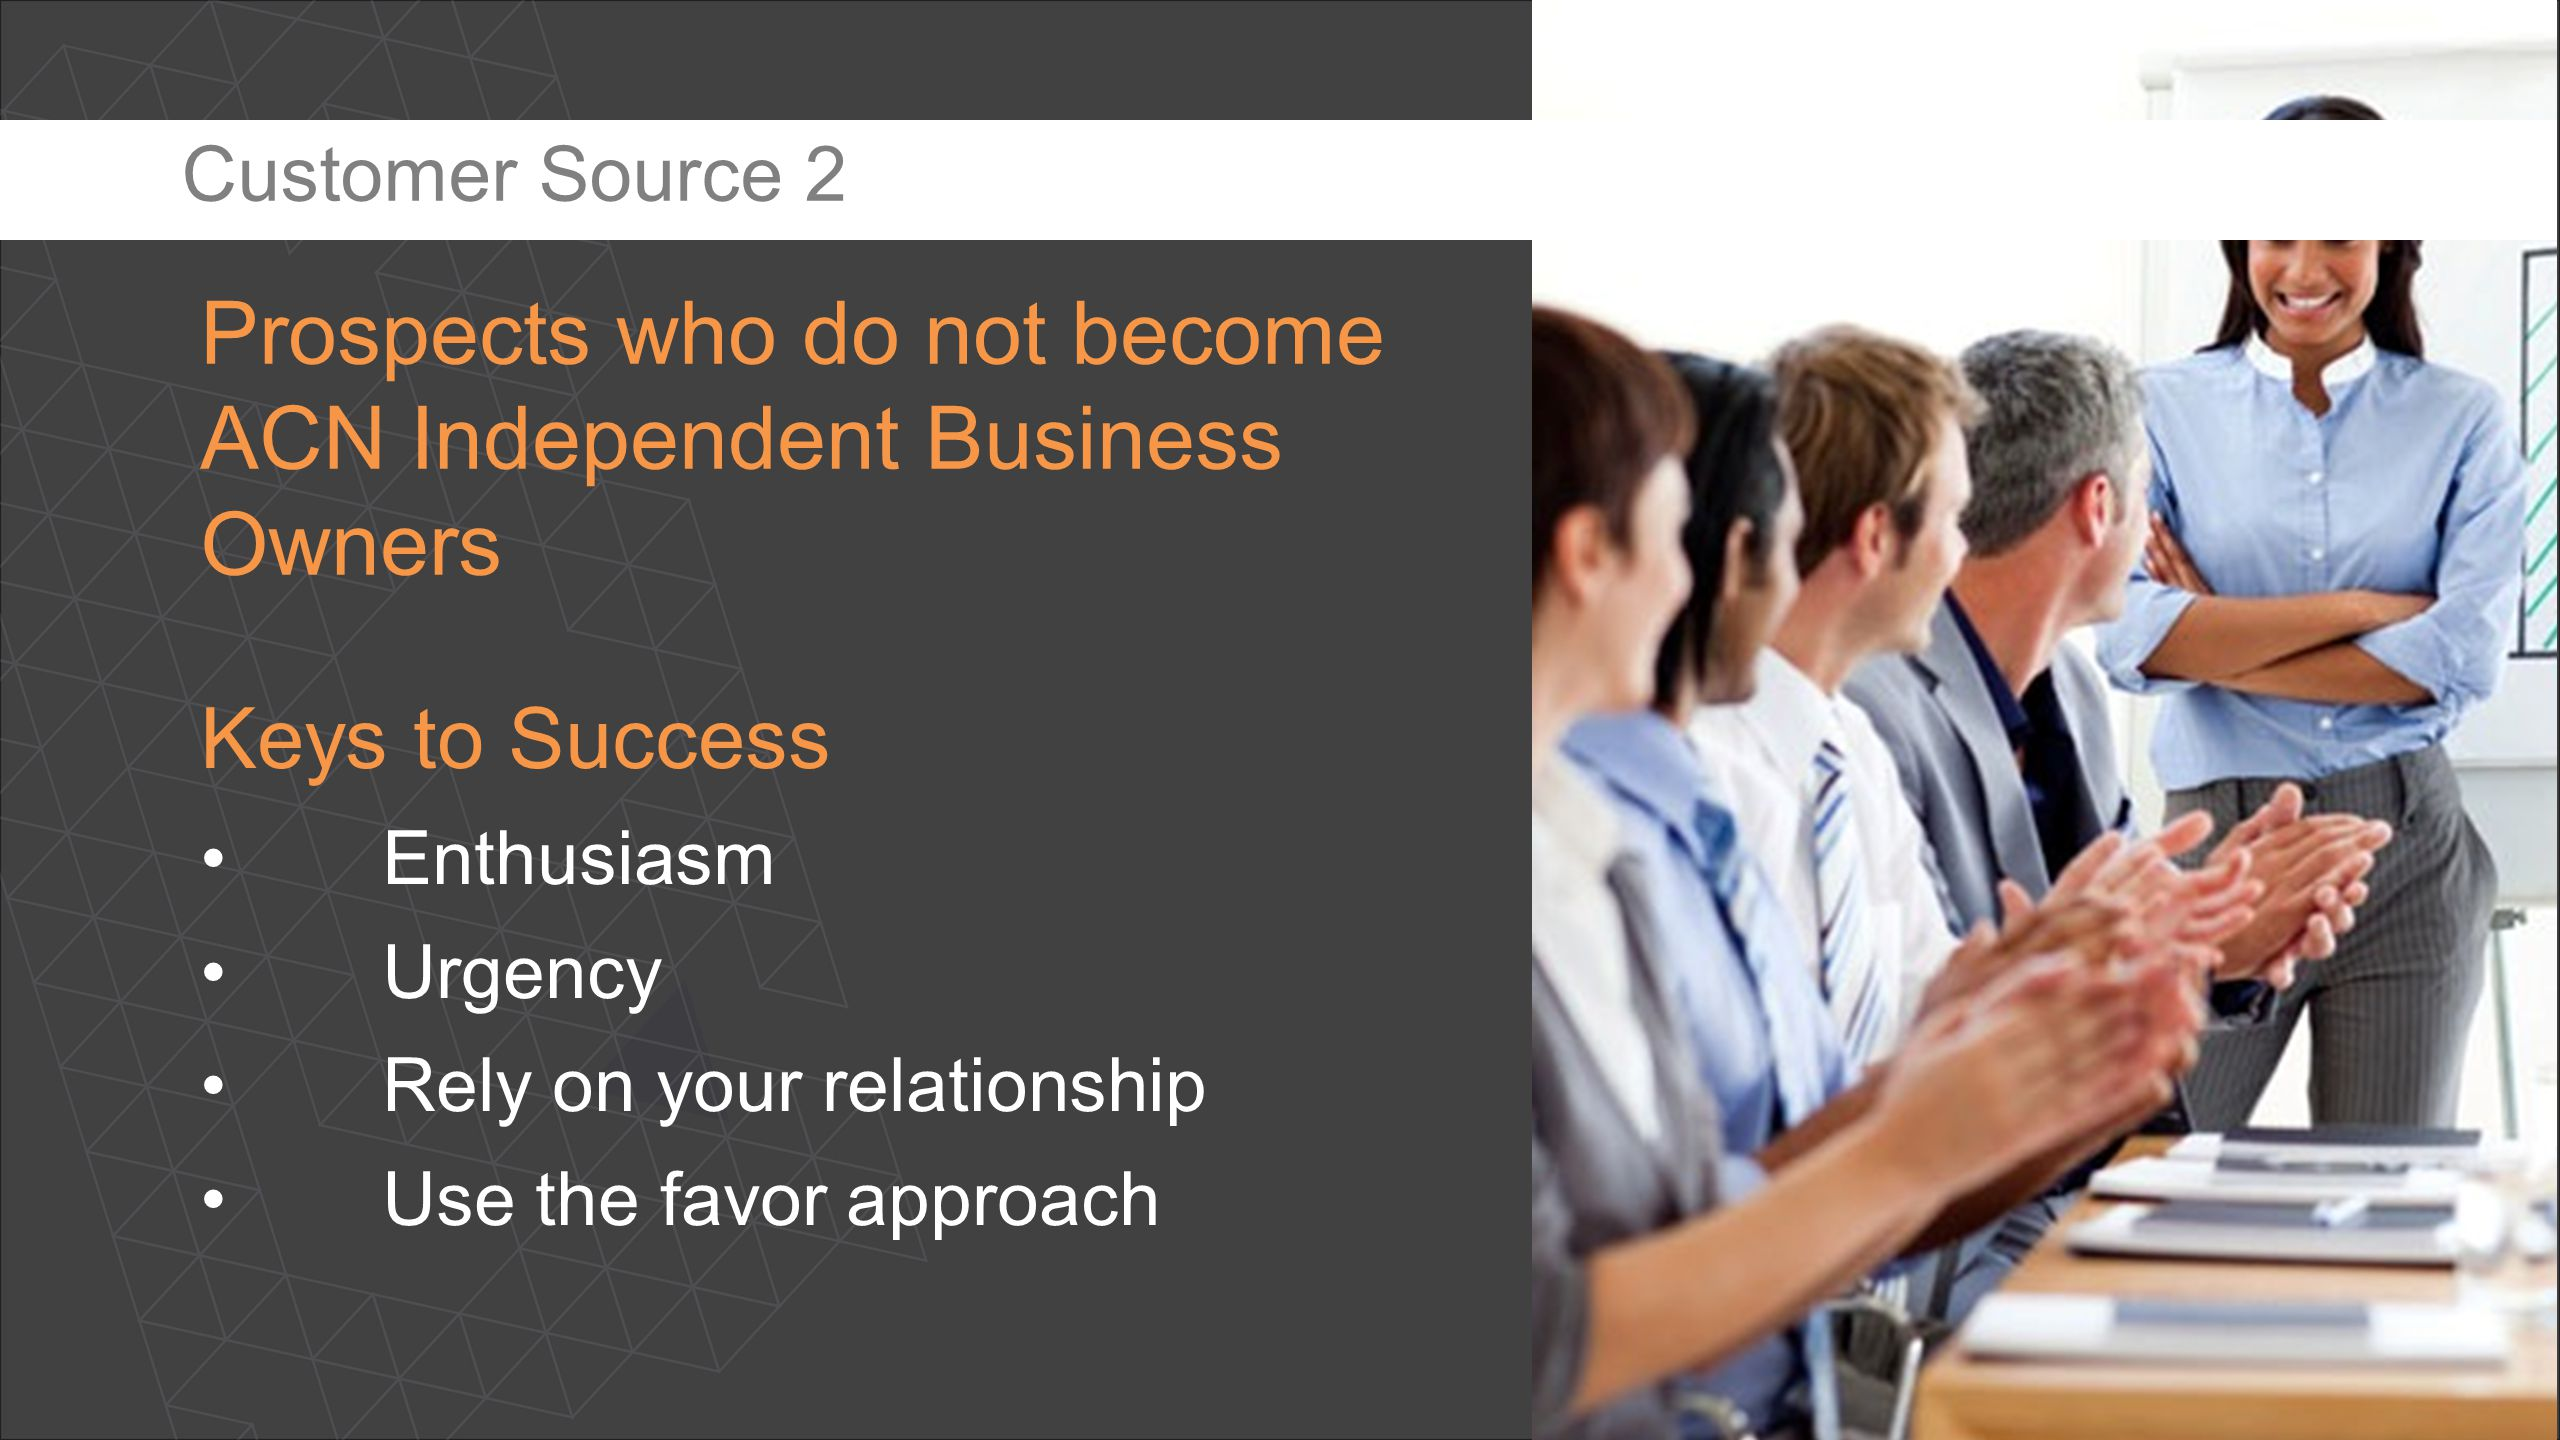 Prospects who do not become ACN Independent Business Owners